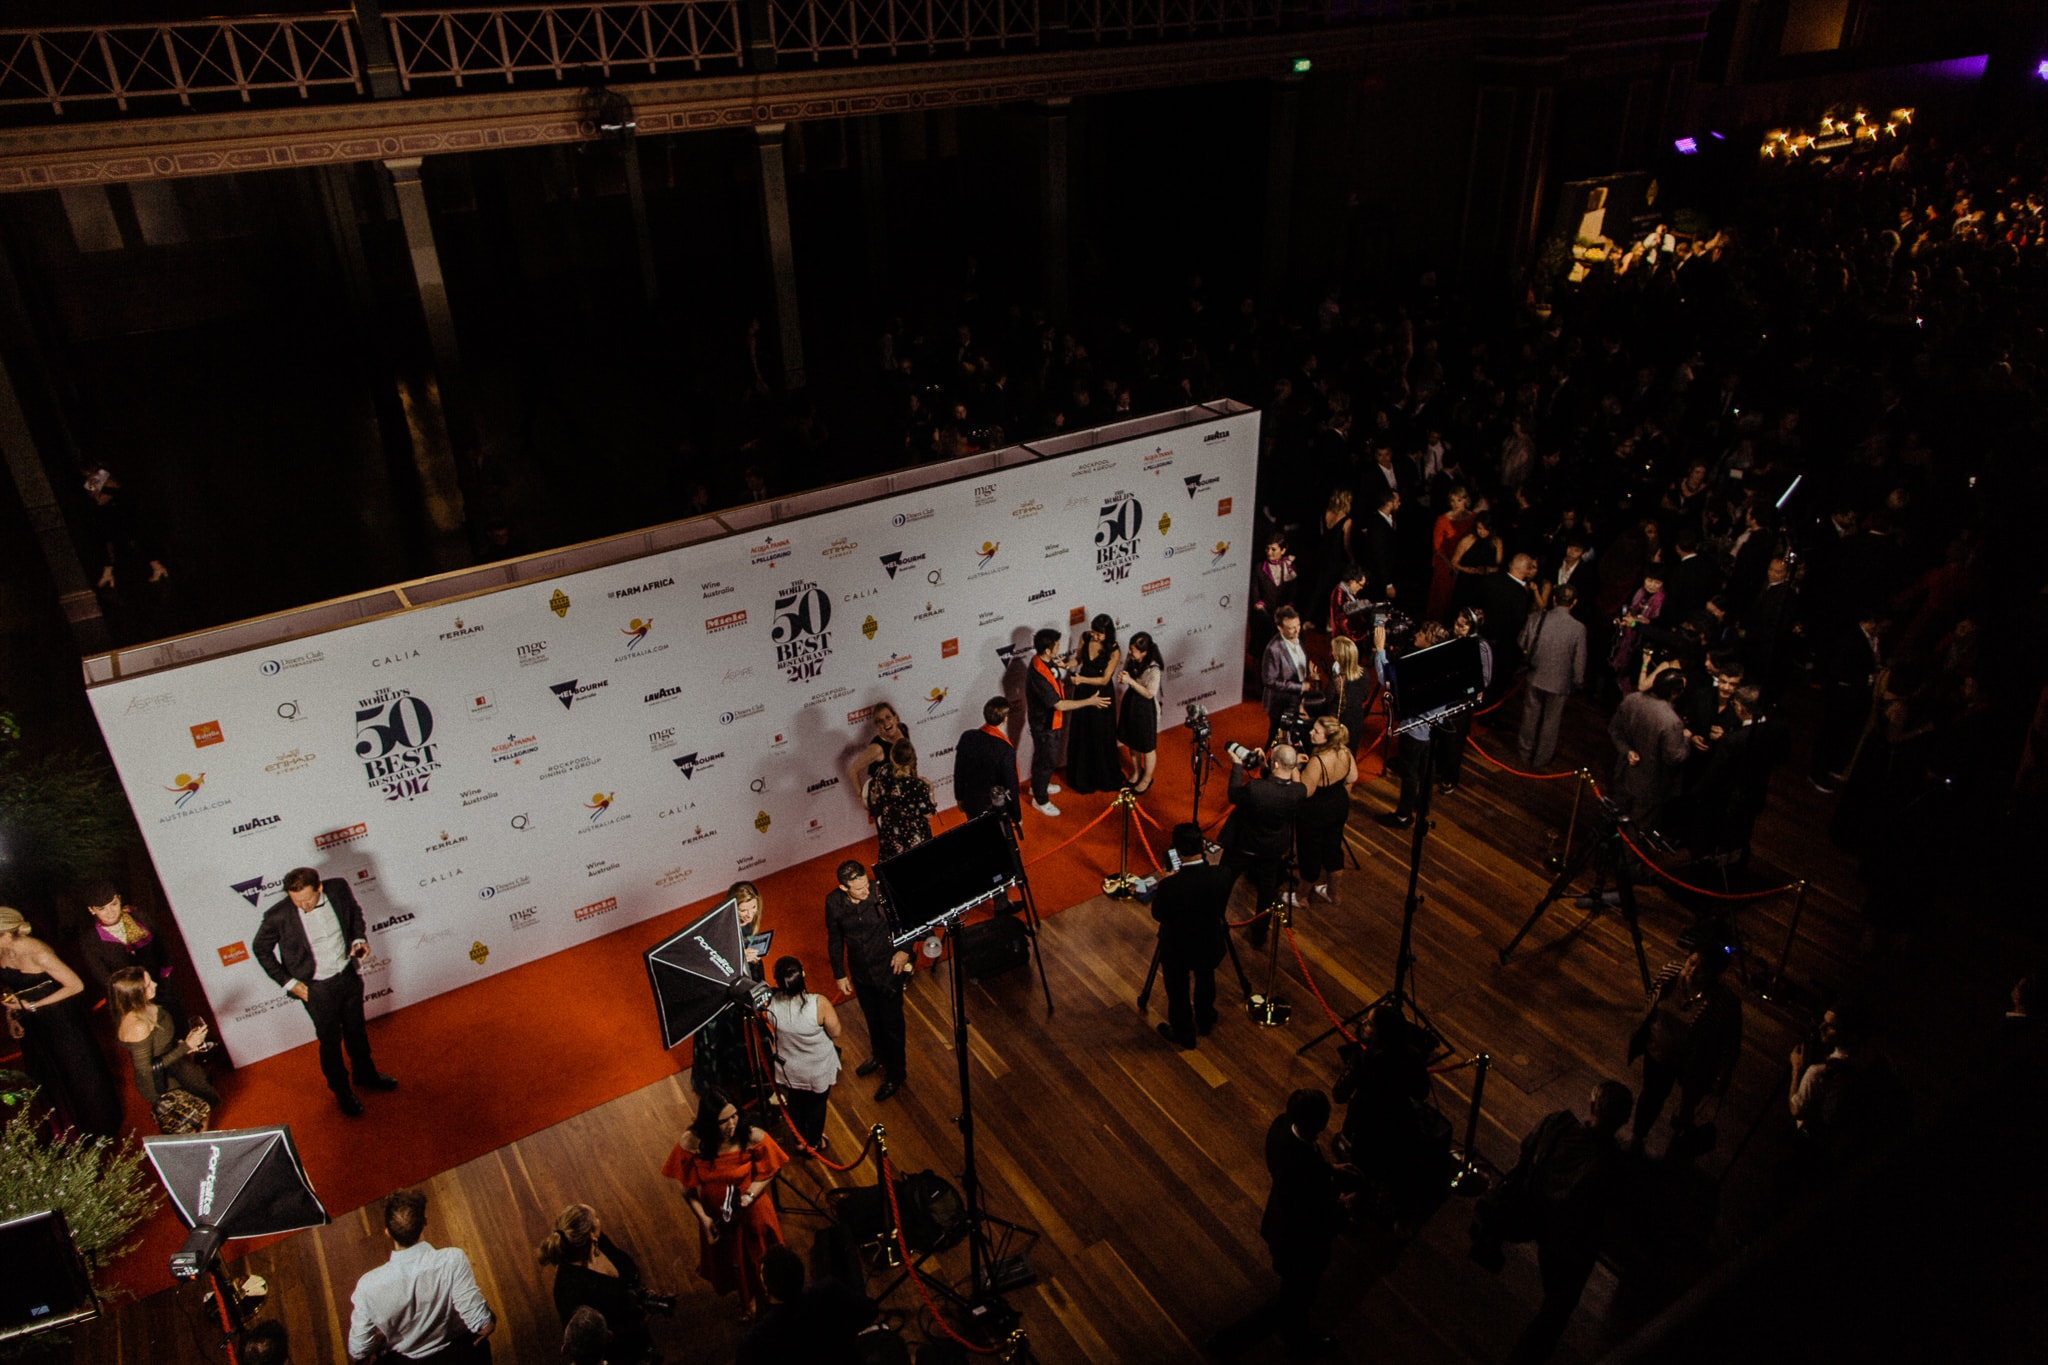 high end event photographer - 50 best awards media wall